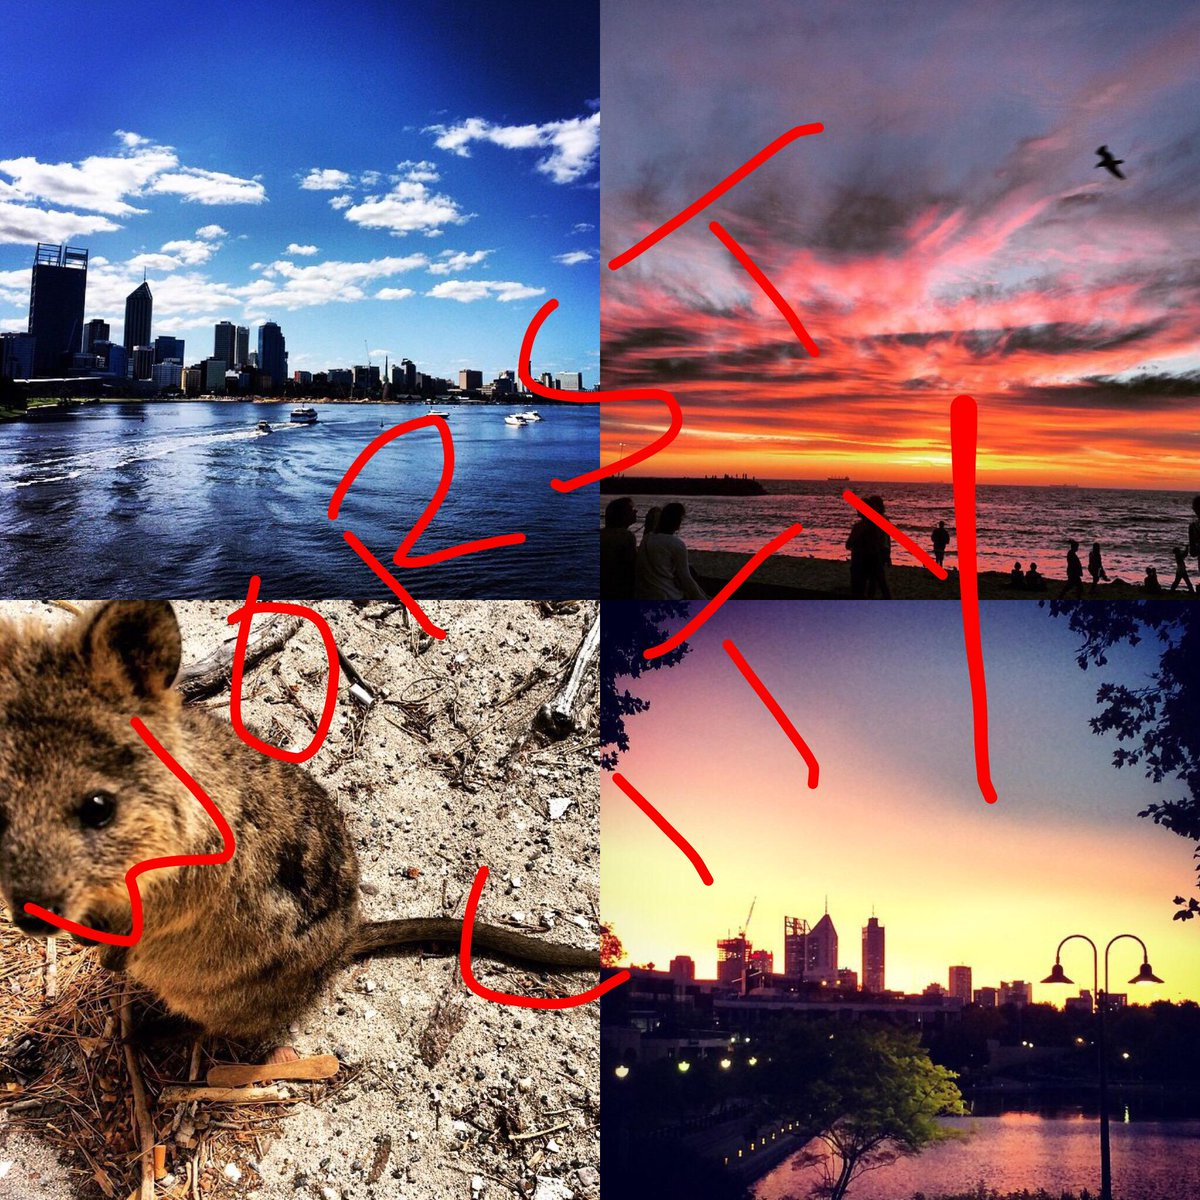 Why #Perth is probably the worst city in the world http://t.co/gUEwO0cUnM http://t.co/hhEvvxnM3V